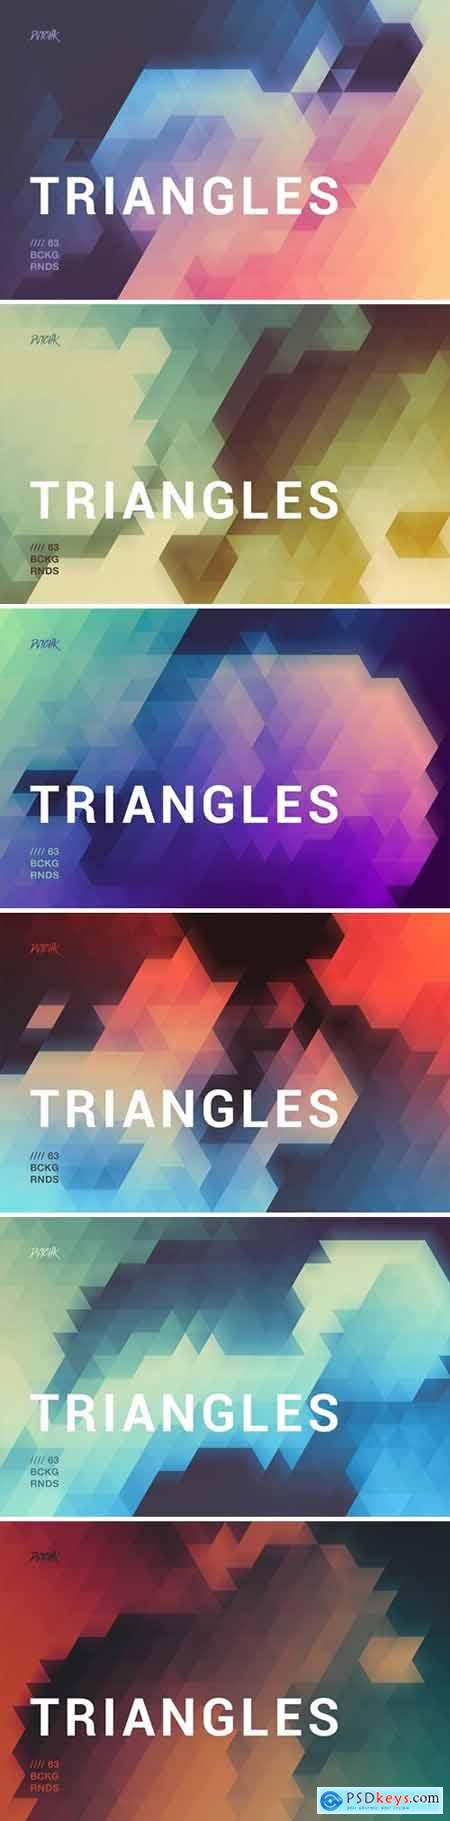 Blurry Triangles Backgrounds